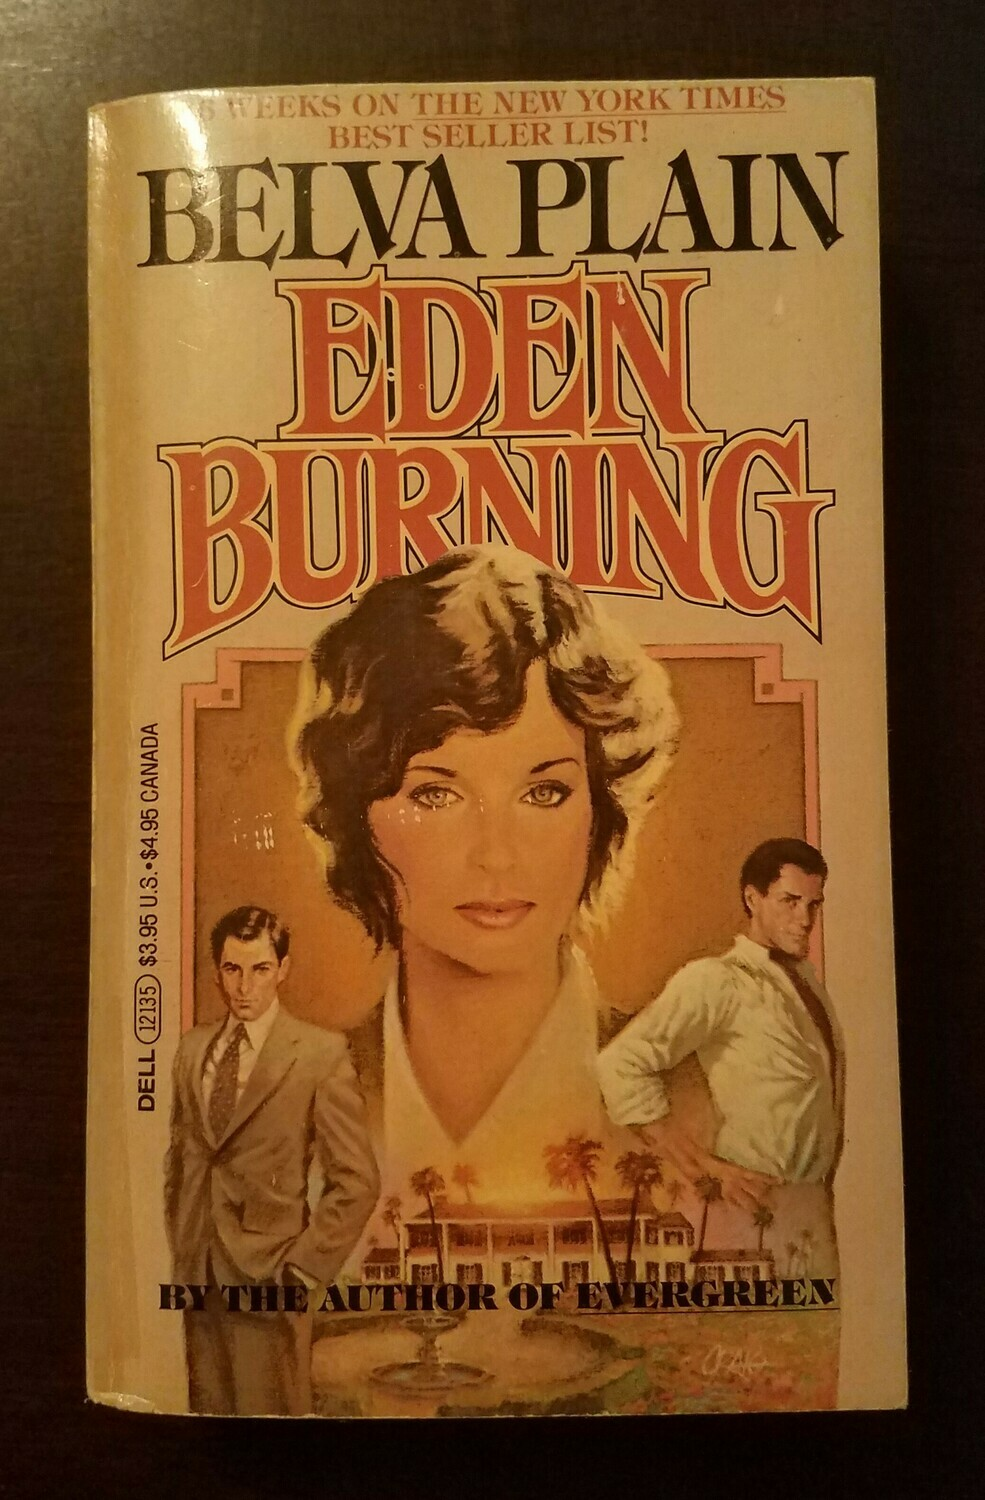 Eden Burning by Belva Plain